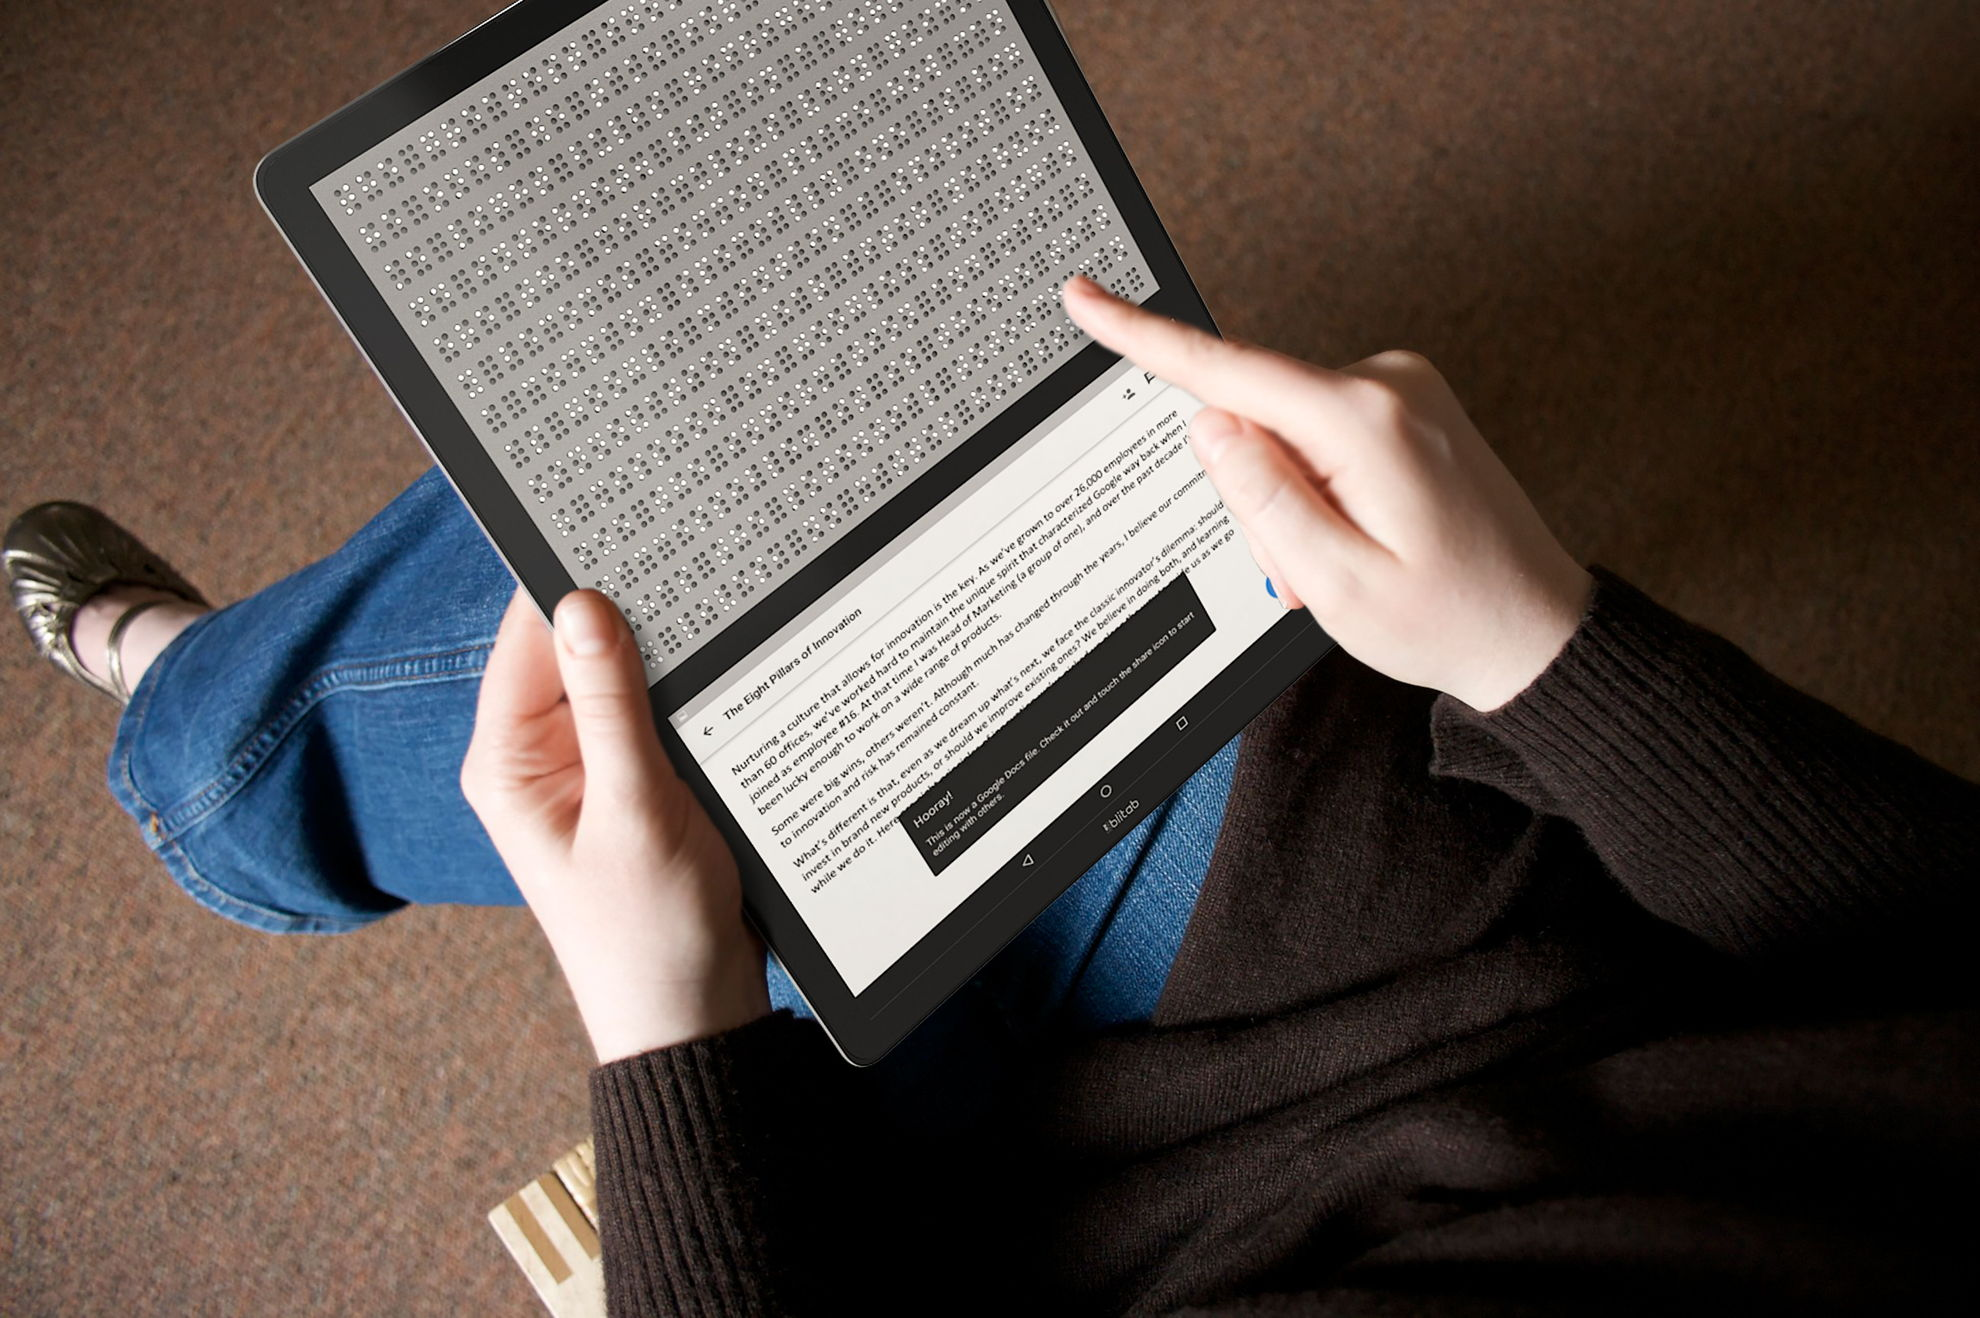 Woman holding Blitab in her lap reading a Google Document in braille with the print displayed at the bottom of the device.